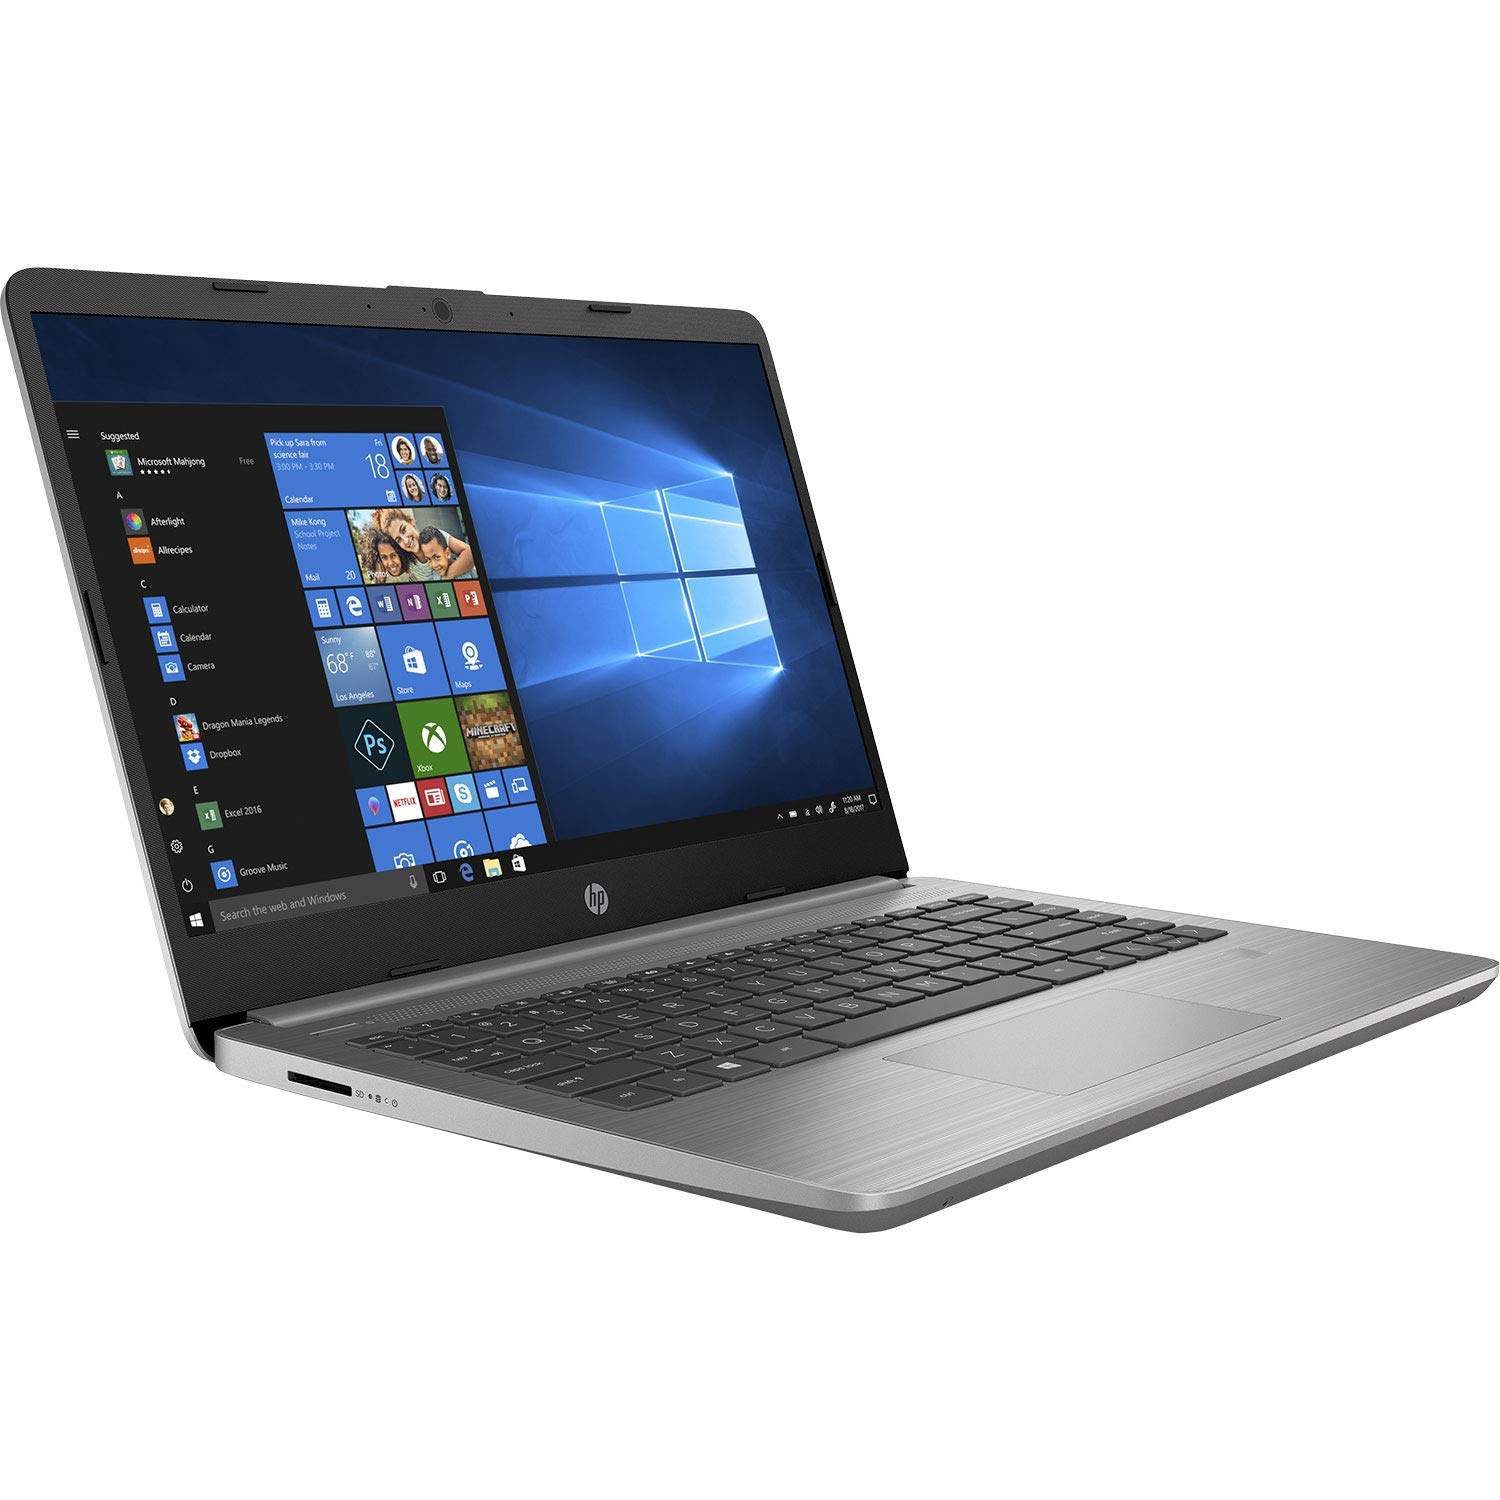 HP Notebook PC 340S G7 14- Laptop (10th Gen Core I5-1035U/8GB/512GB SSD/DOS/Intel UHD Graphics), Ash Silver [B08826TNR6]